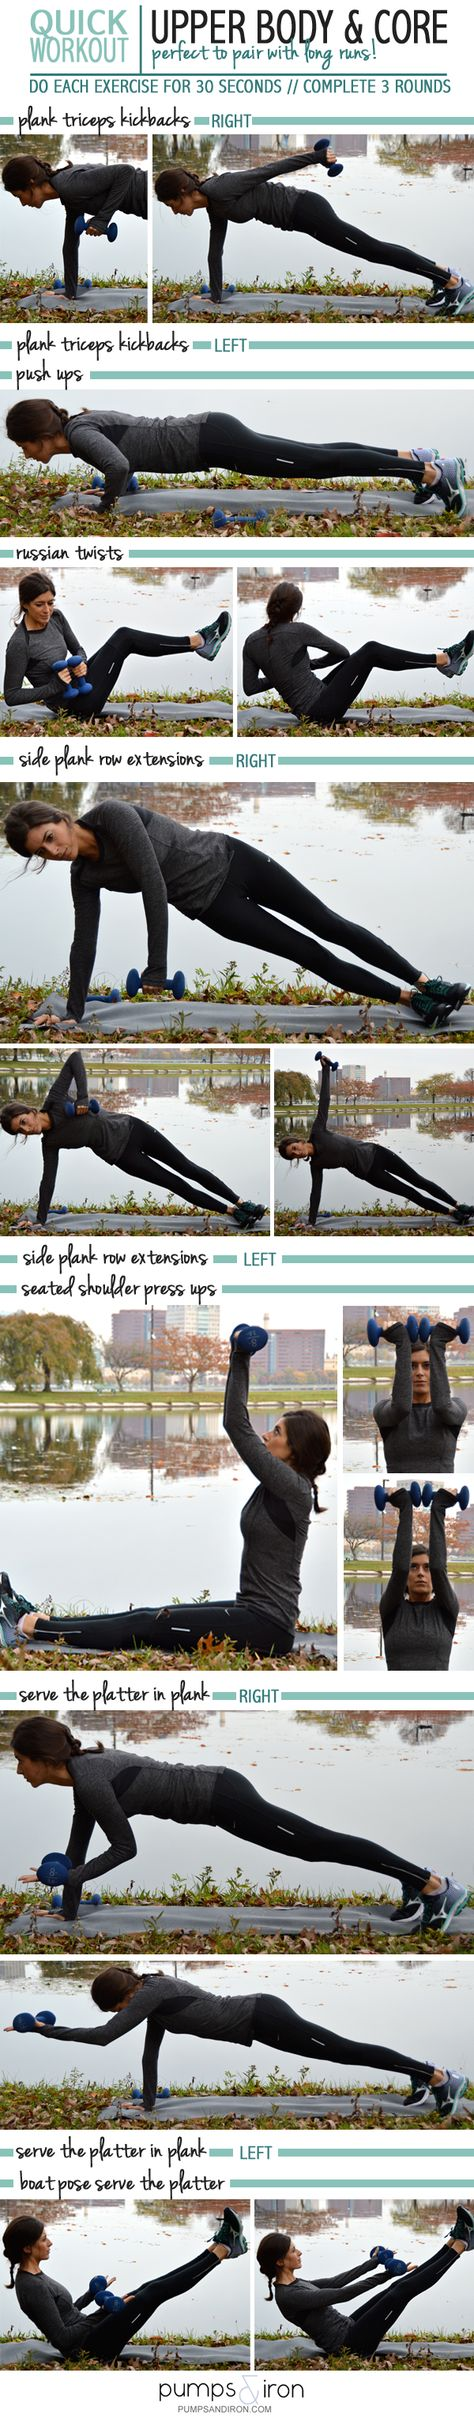 upper body and core workout (perfect for pairing with a long run!)